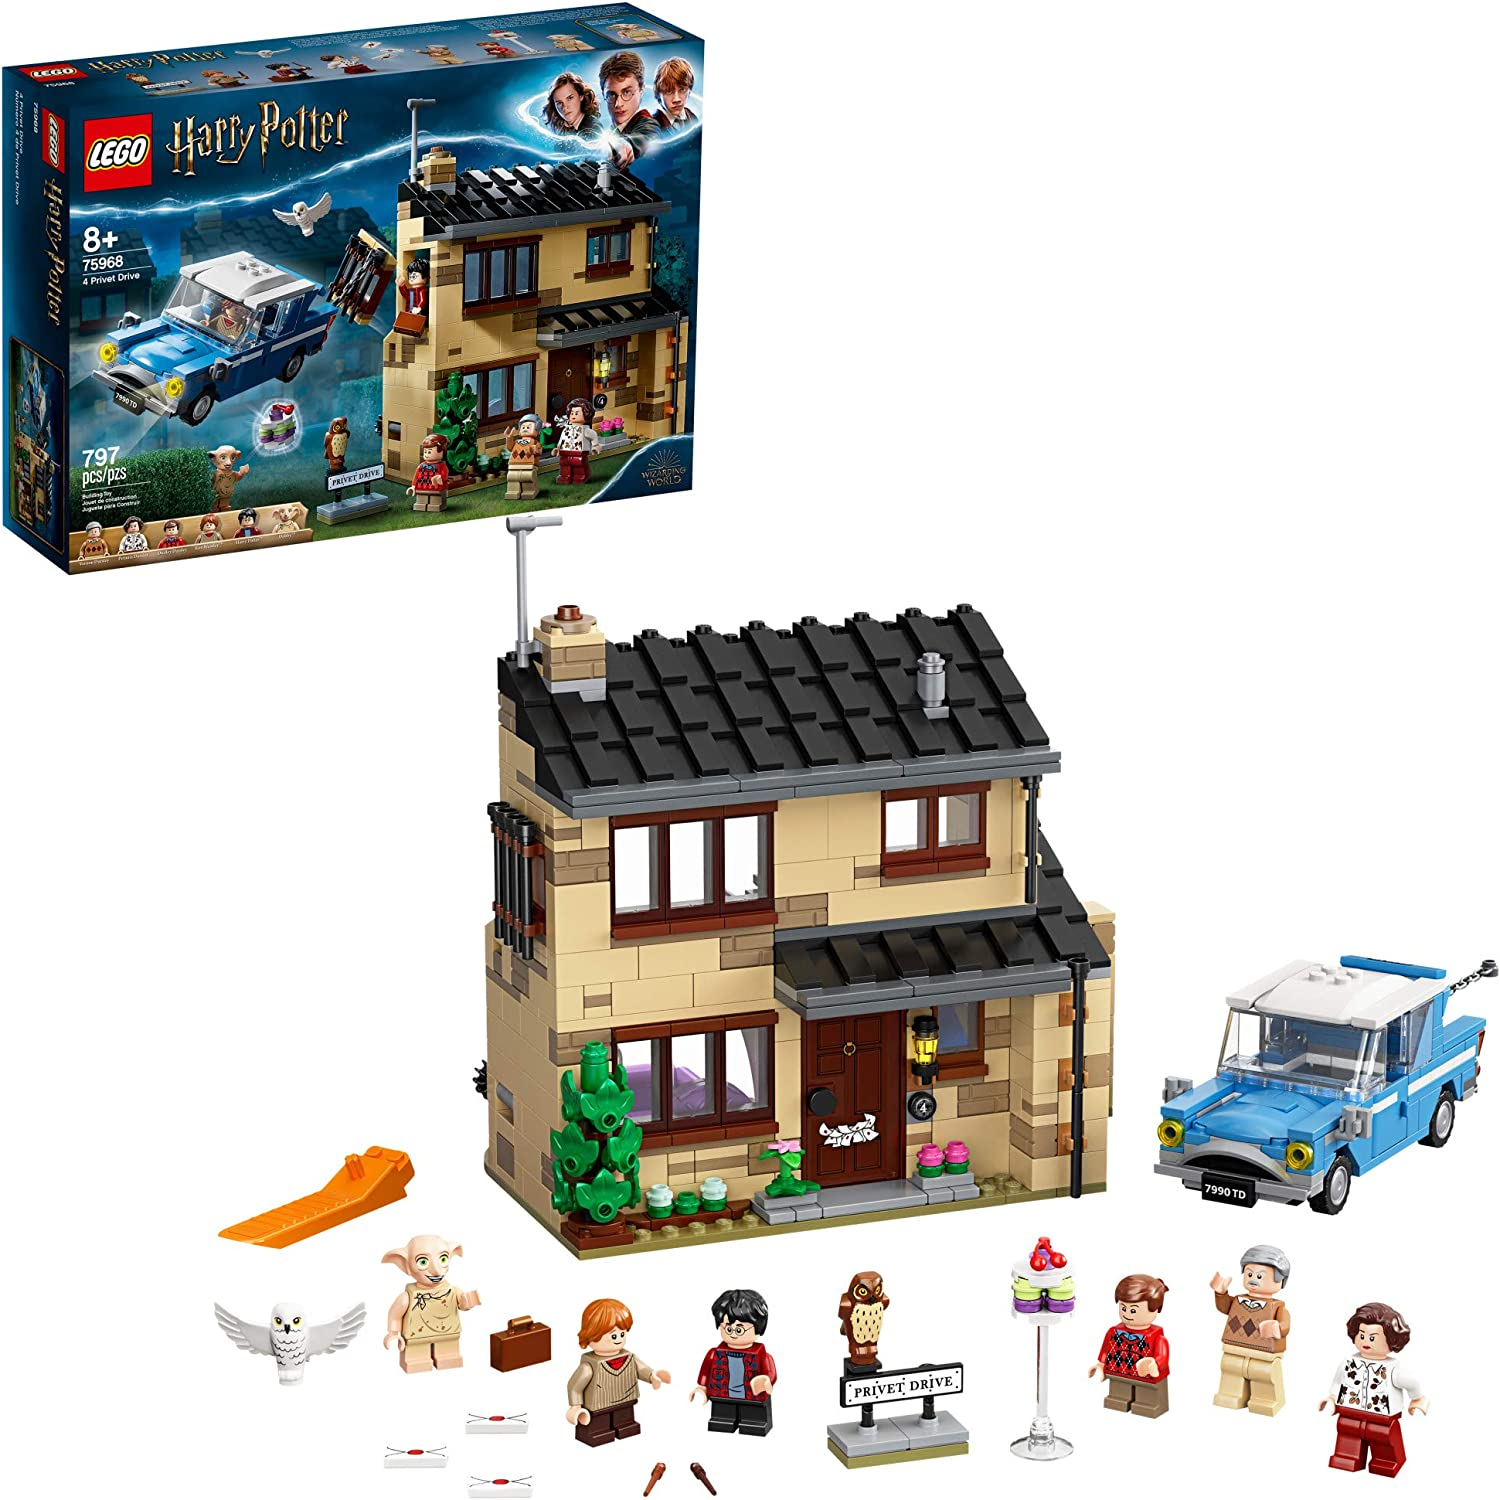 Lego Harry Potter 4 Privet Drive 75968 Fun Children S Building Toy For Kids Who Love Harry Potter Movies Collectible Playsets Role Playing Games And Dollhouse Sets New 2020 797 Pieces Toys Games